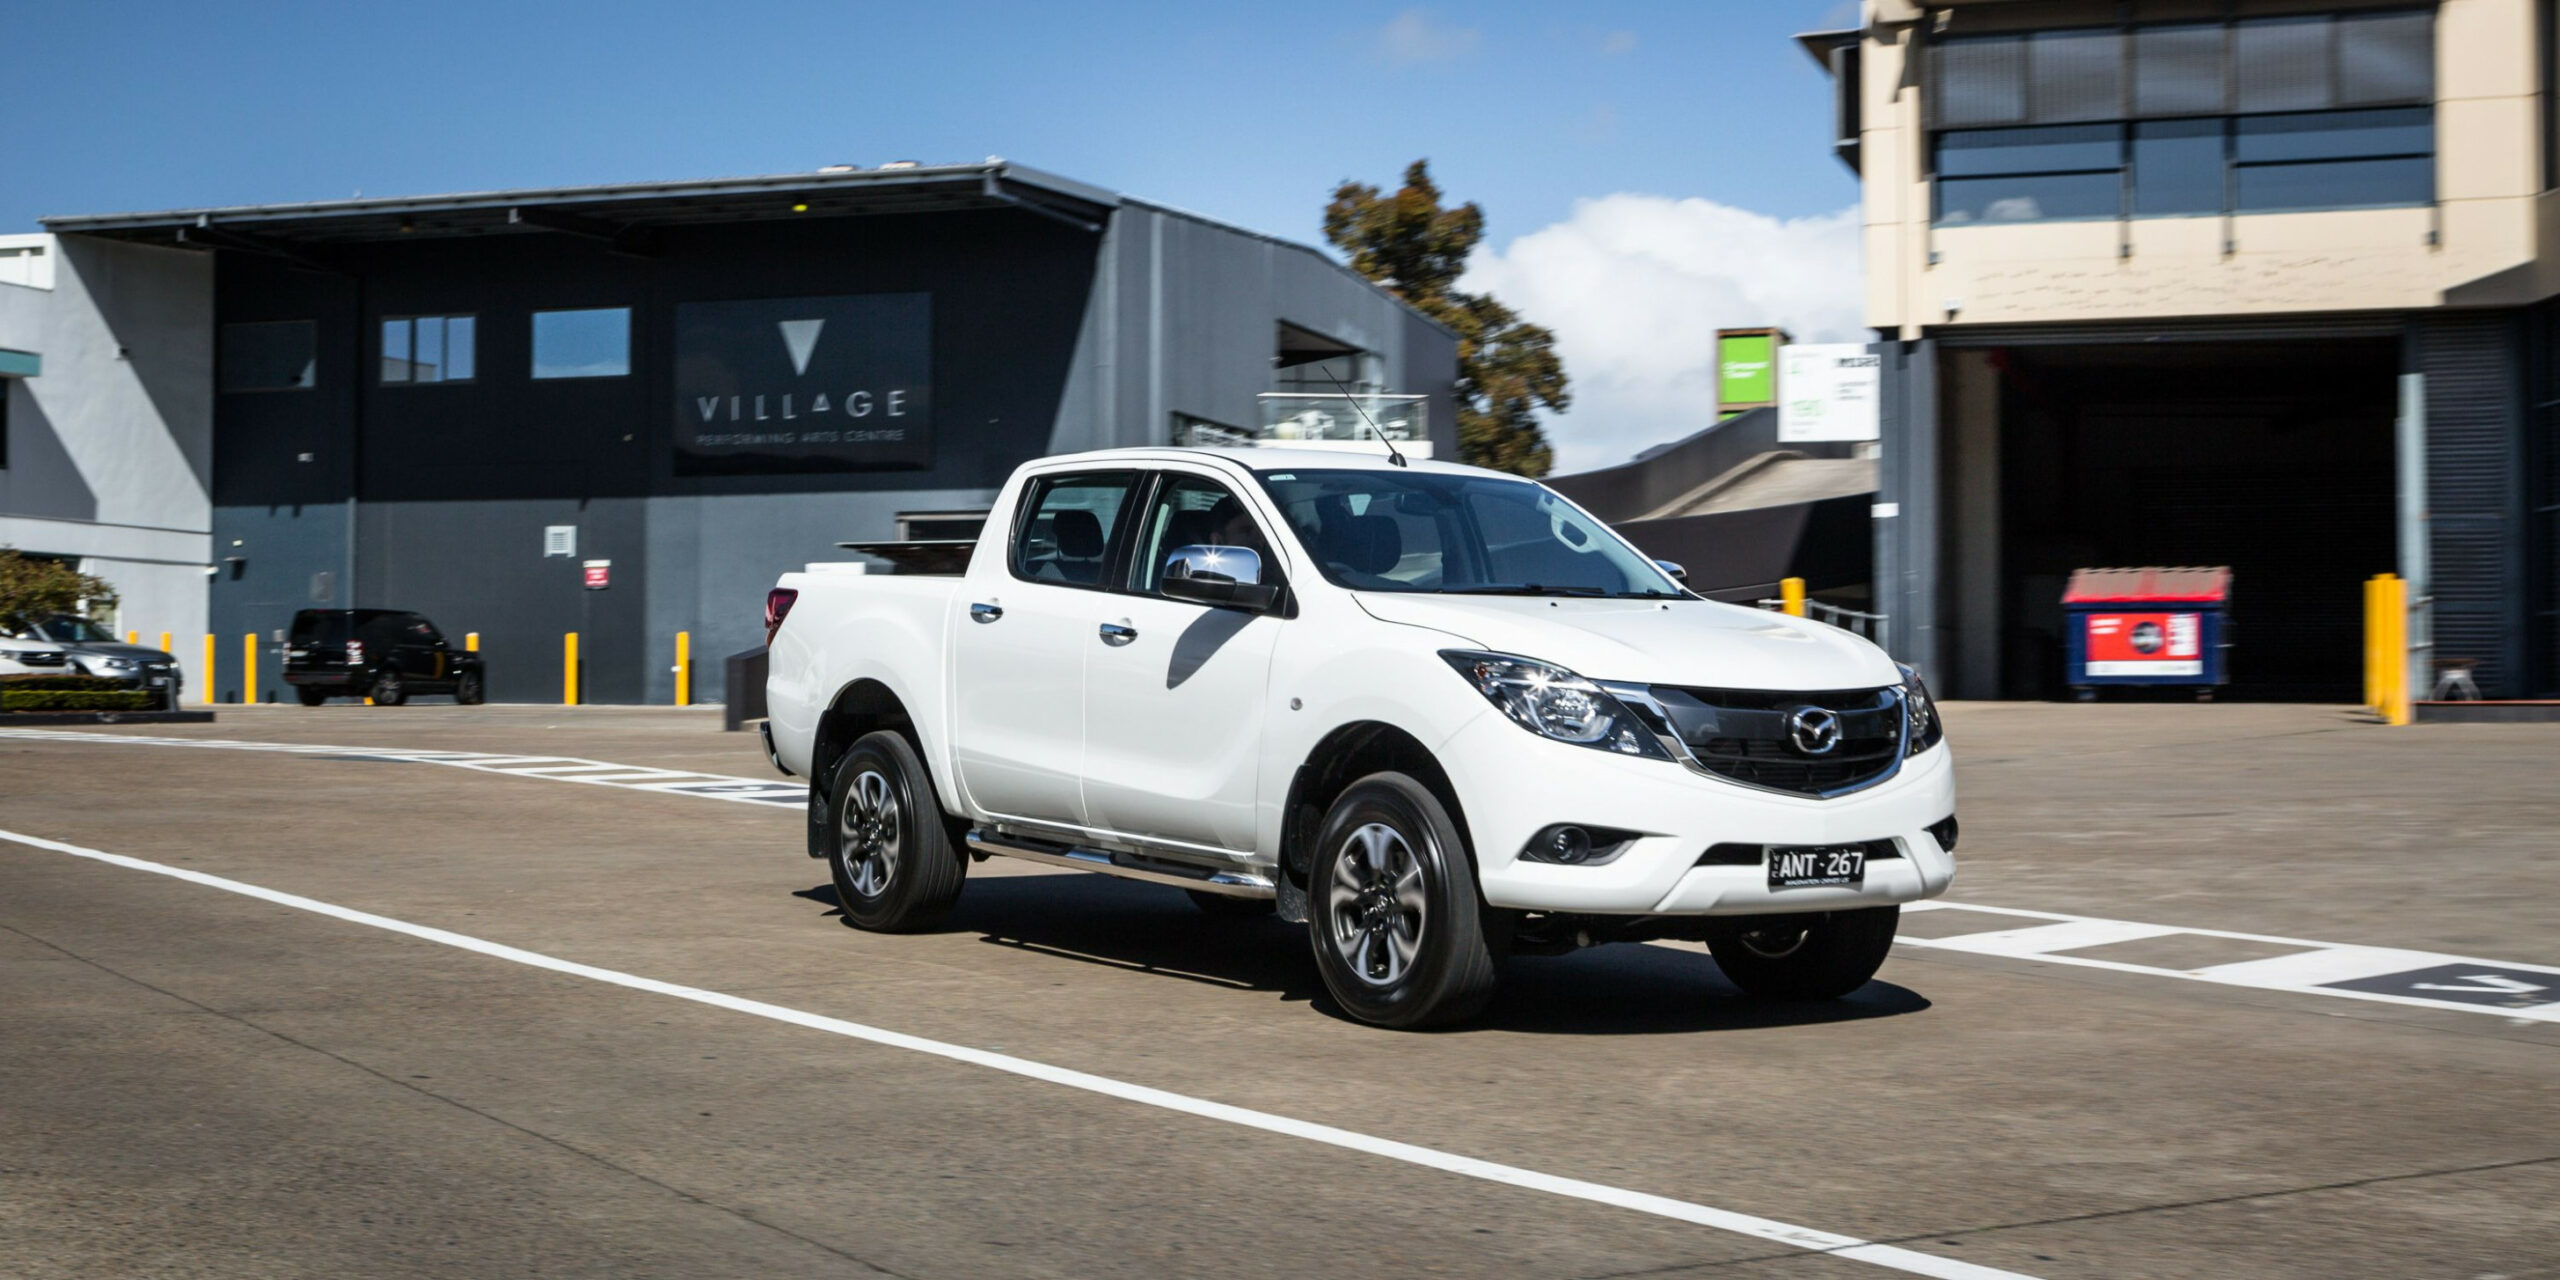 7 mazda double cab First Drive, Price, Performance and Review ..